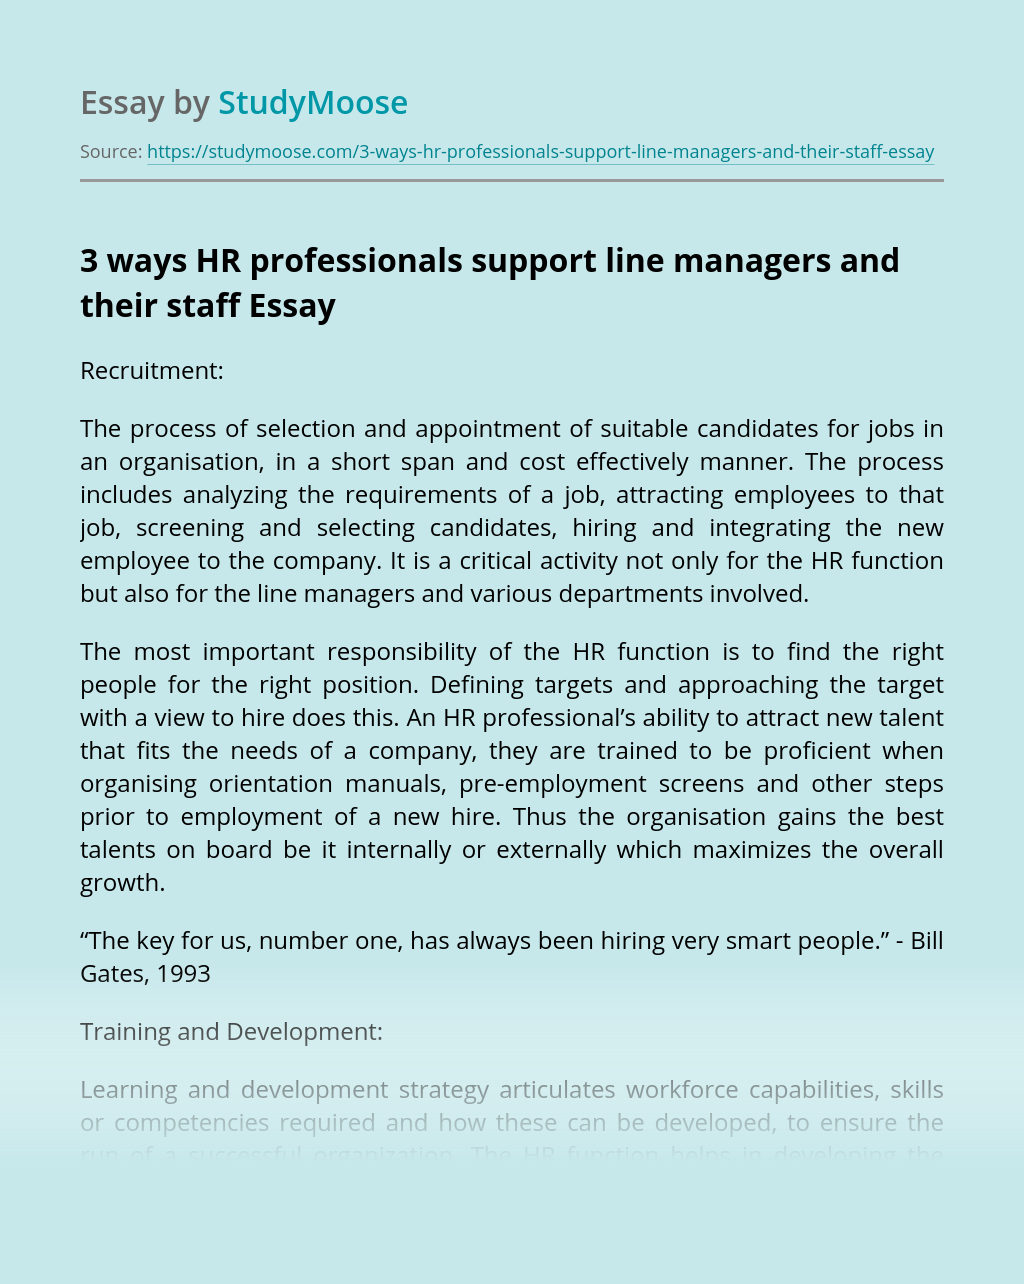 3 Ways HR Professionals Support Line Managers and Their Staff